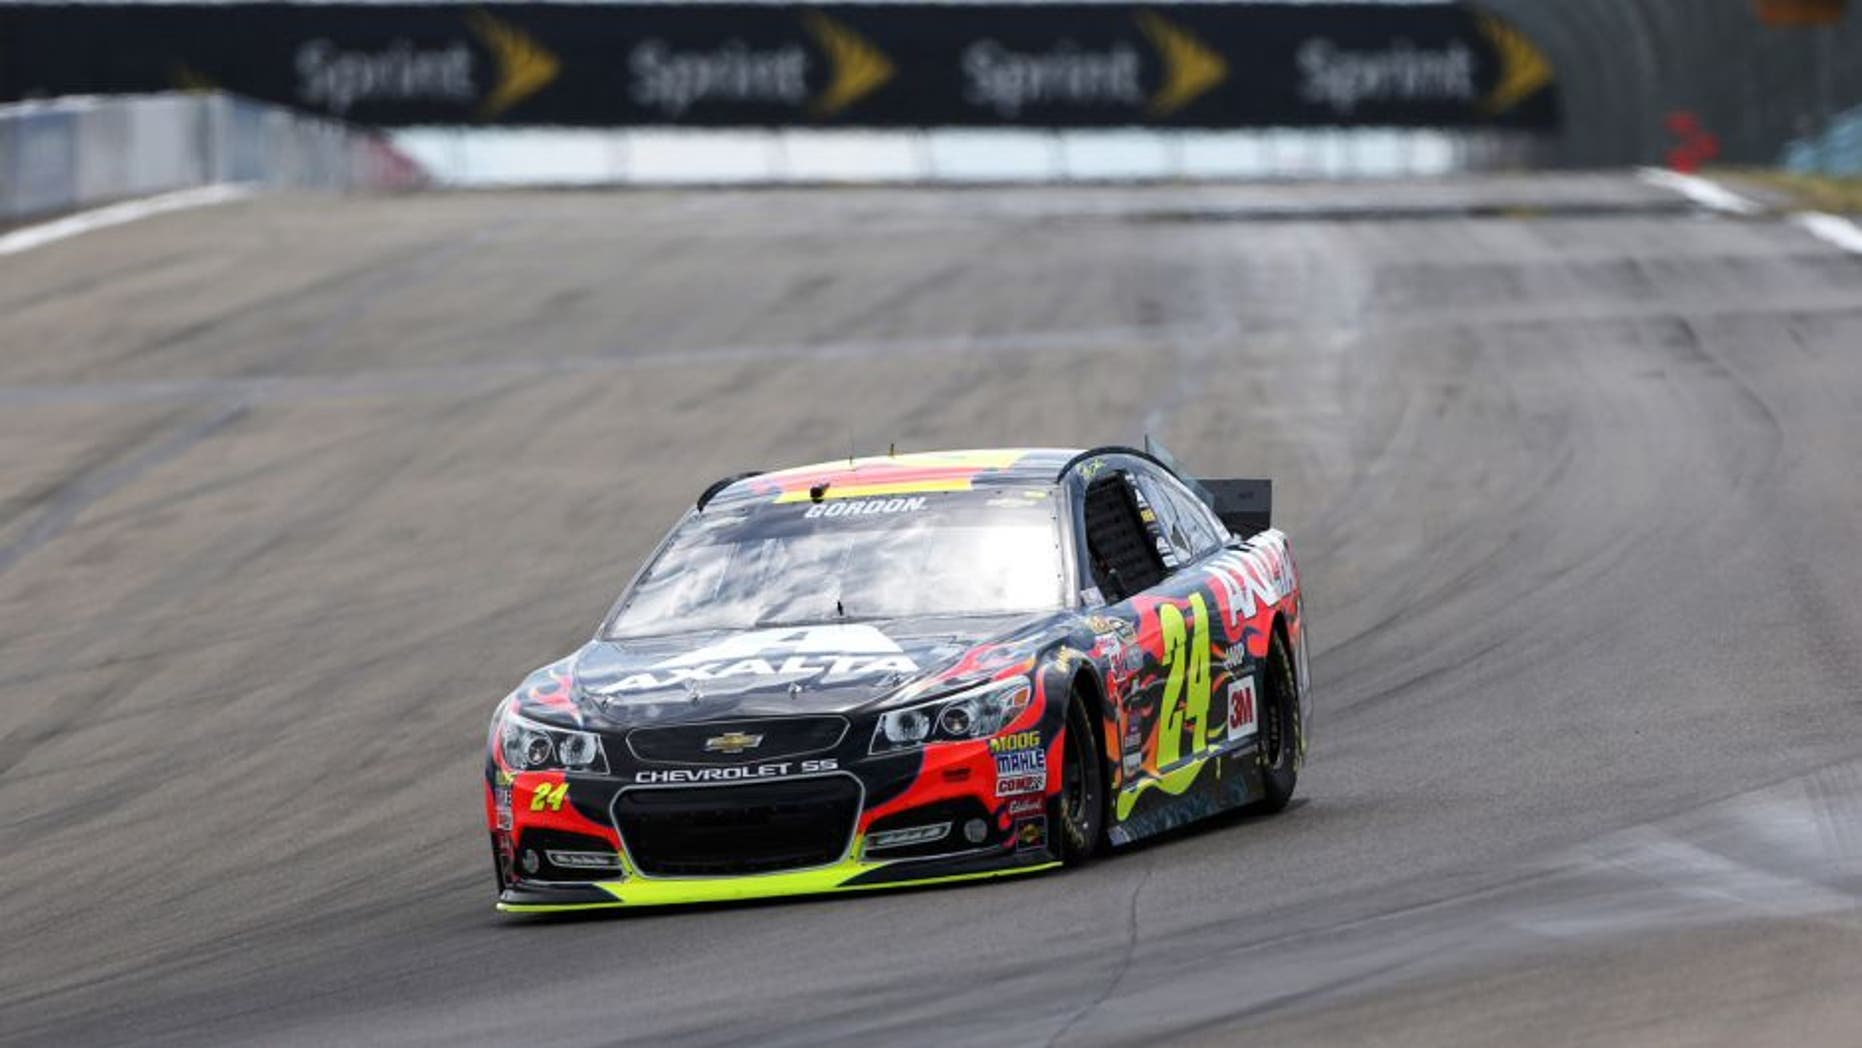 WATKINS GLEN, NY - AUGUST 08: Jeff Gordon, driver of the #24 Axalta Chevrolet, races during qualifying for the NASCAR Sprint Cup Series Cheez-It 355 at Watkins Glen International on August 8, 2015 in Watkins Glen, New York. (Photo by Todd Warshaw/Getty Images)